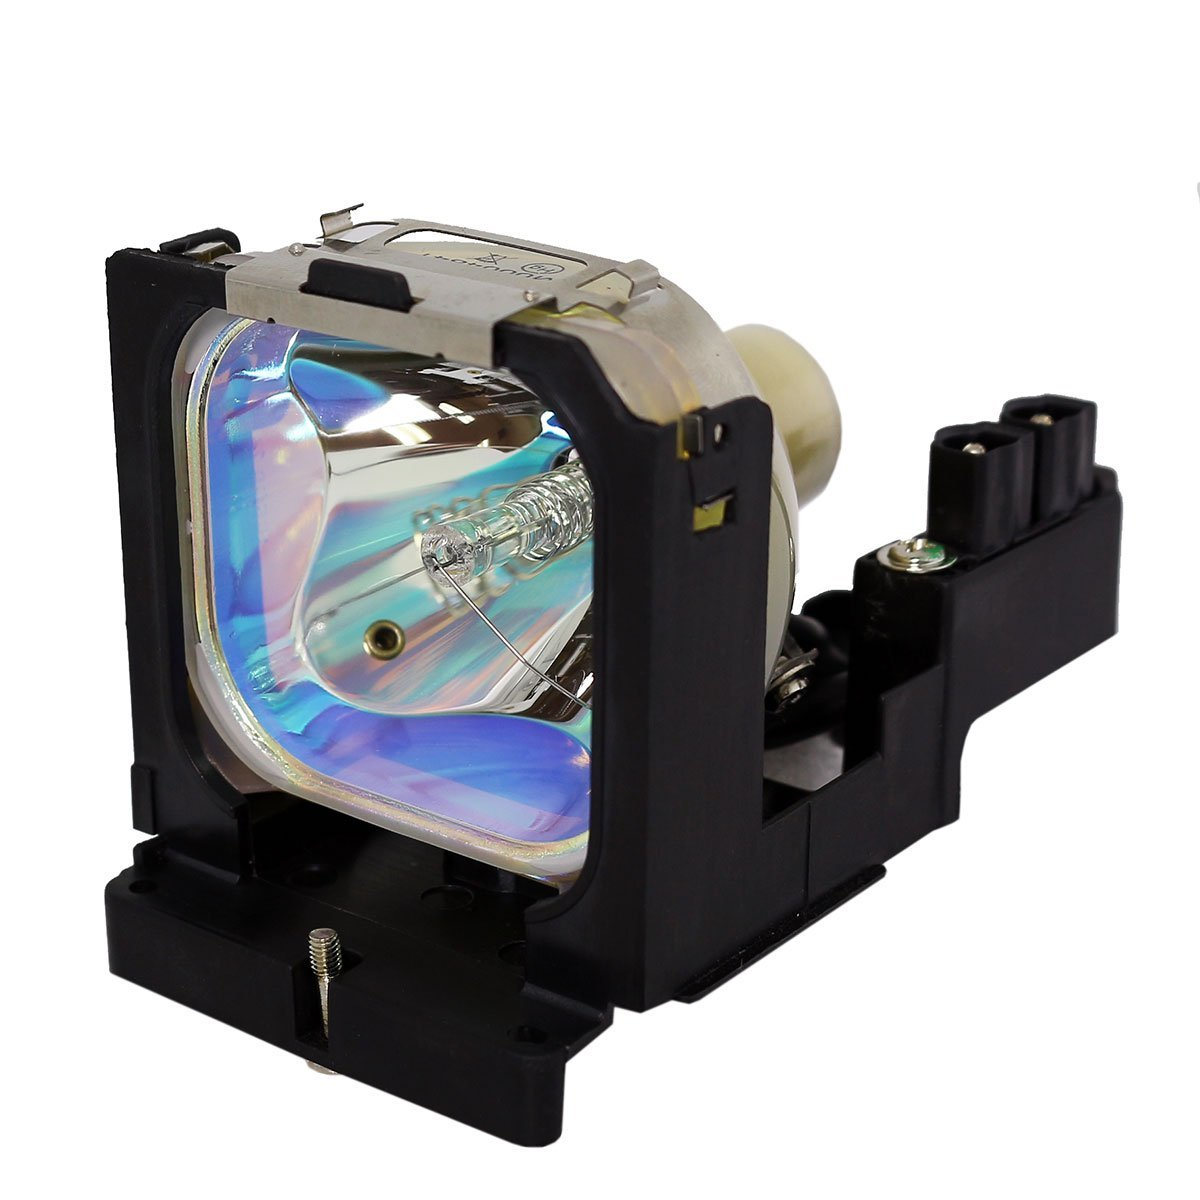 POA-LMP86 / 610 317 5355 Replacement For SANYO PLV-Z1X / PLV-Z3 Projector Lamp With Housing With 180 Days Warranty